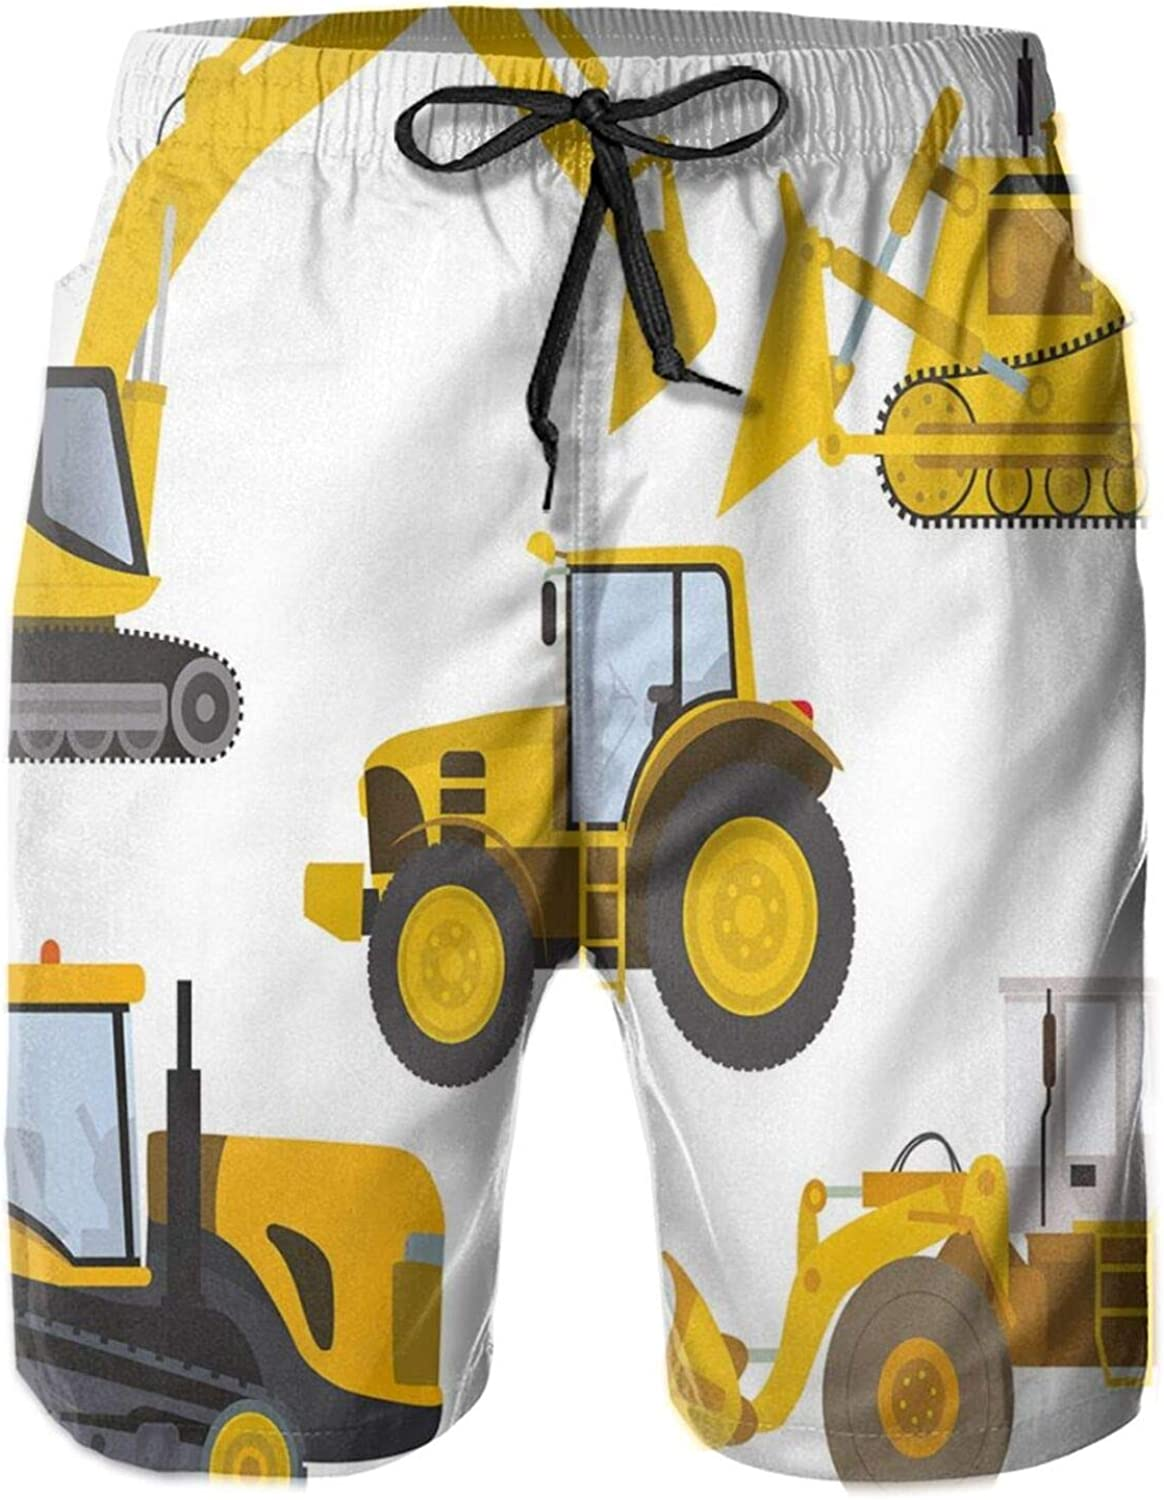 MUJAQ Animation Inspired Heavy Machinery Drawing Construction Cartoon Bulldozer Print Swimming Trunks for Men Beach Shorts Casual Style,M